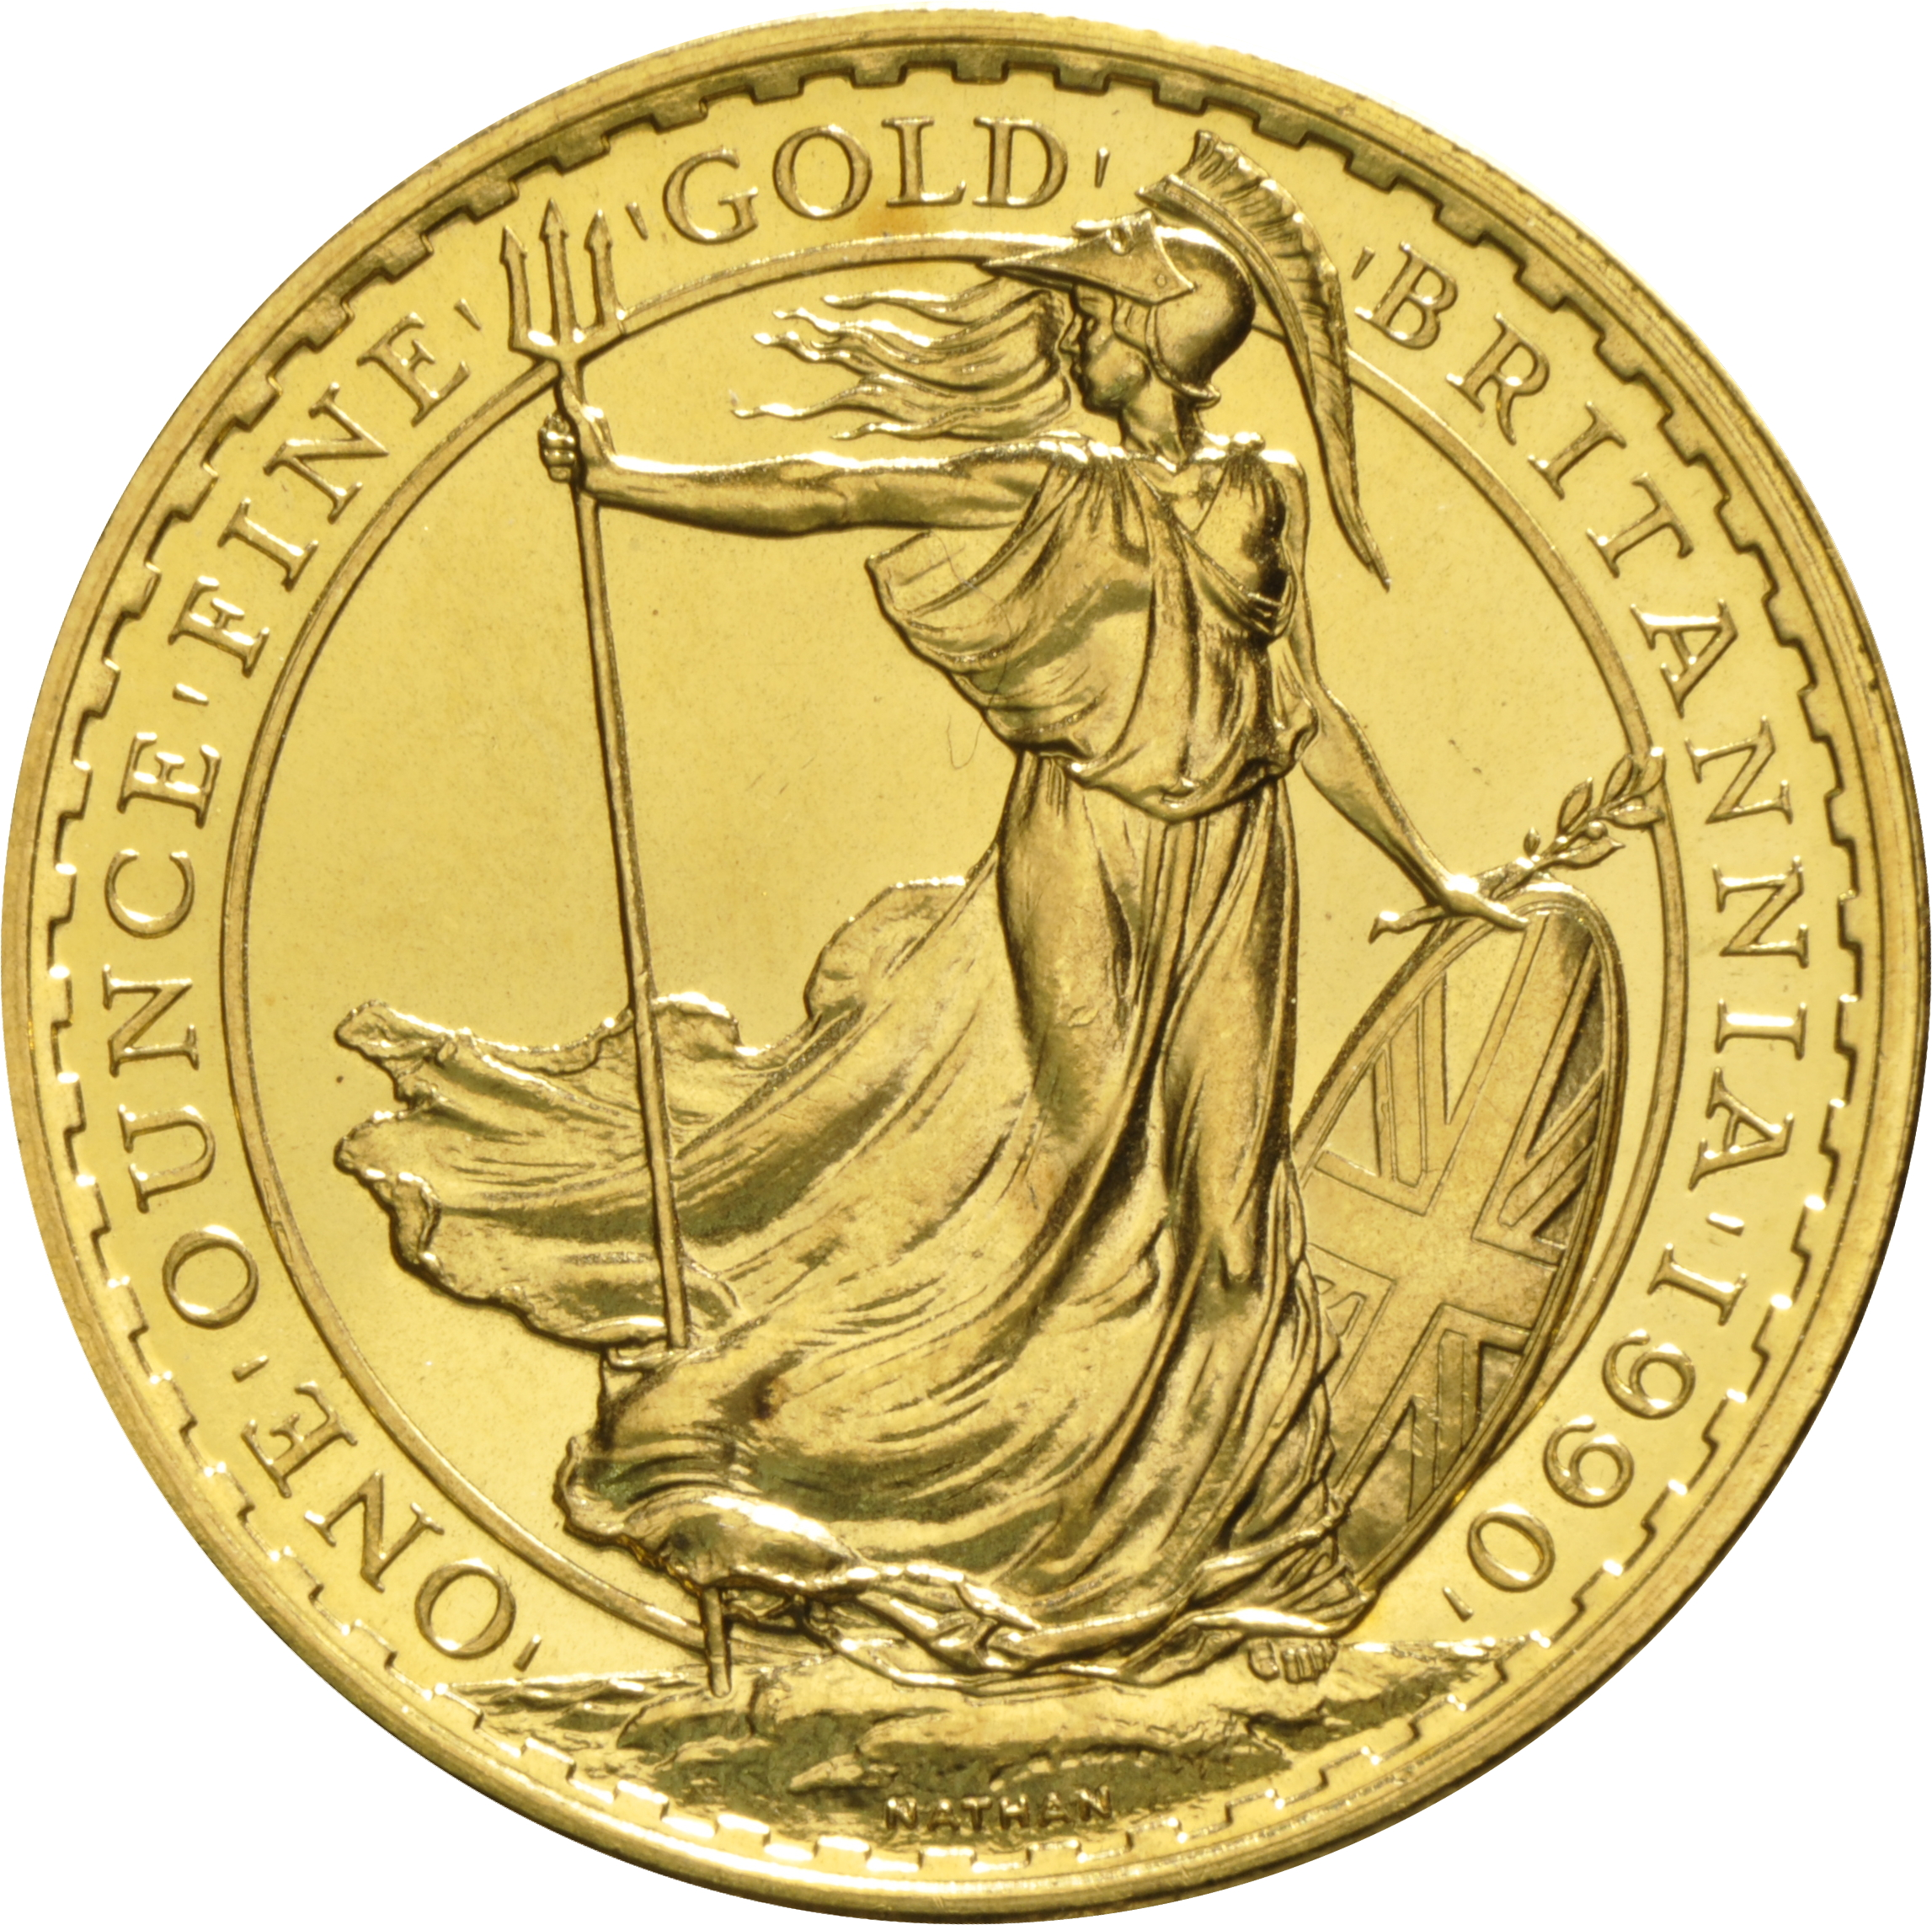 1990 Gold Britannia One Ounce Coin 1 228